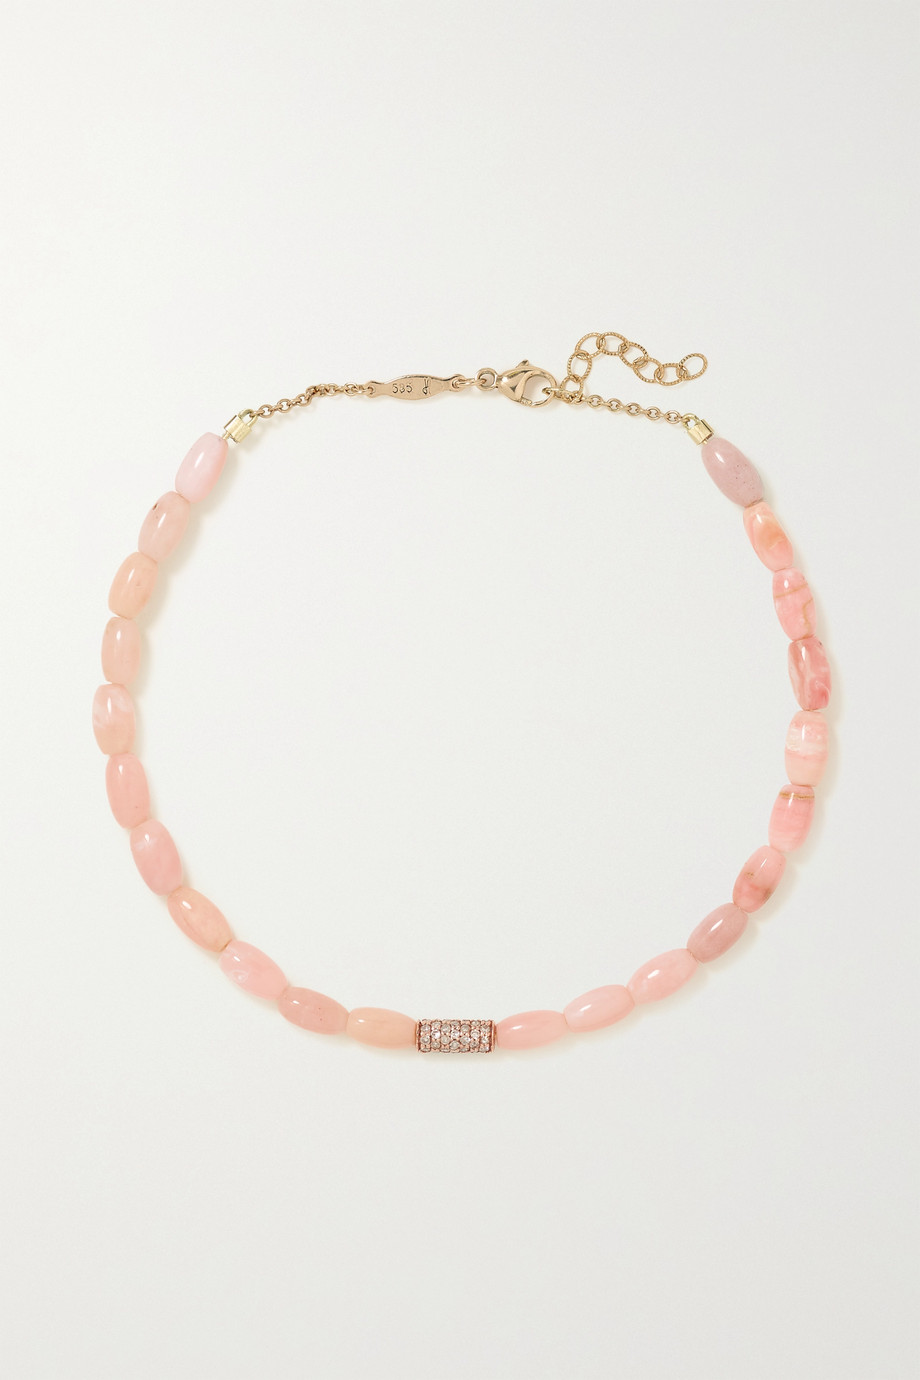 Jacquie Aiche 14-karat rose gold, opal and diamond anklet